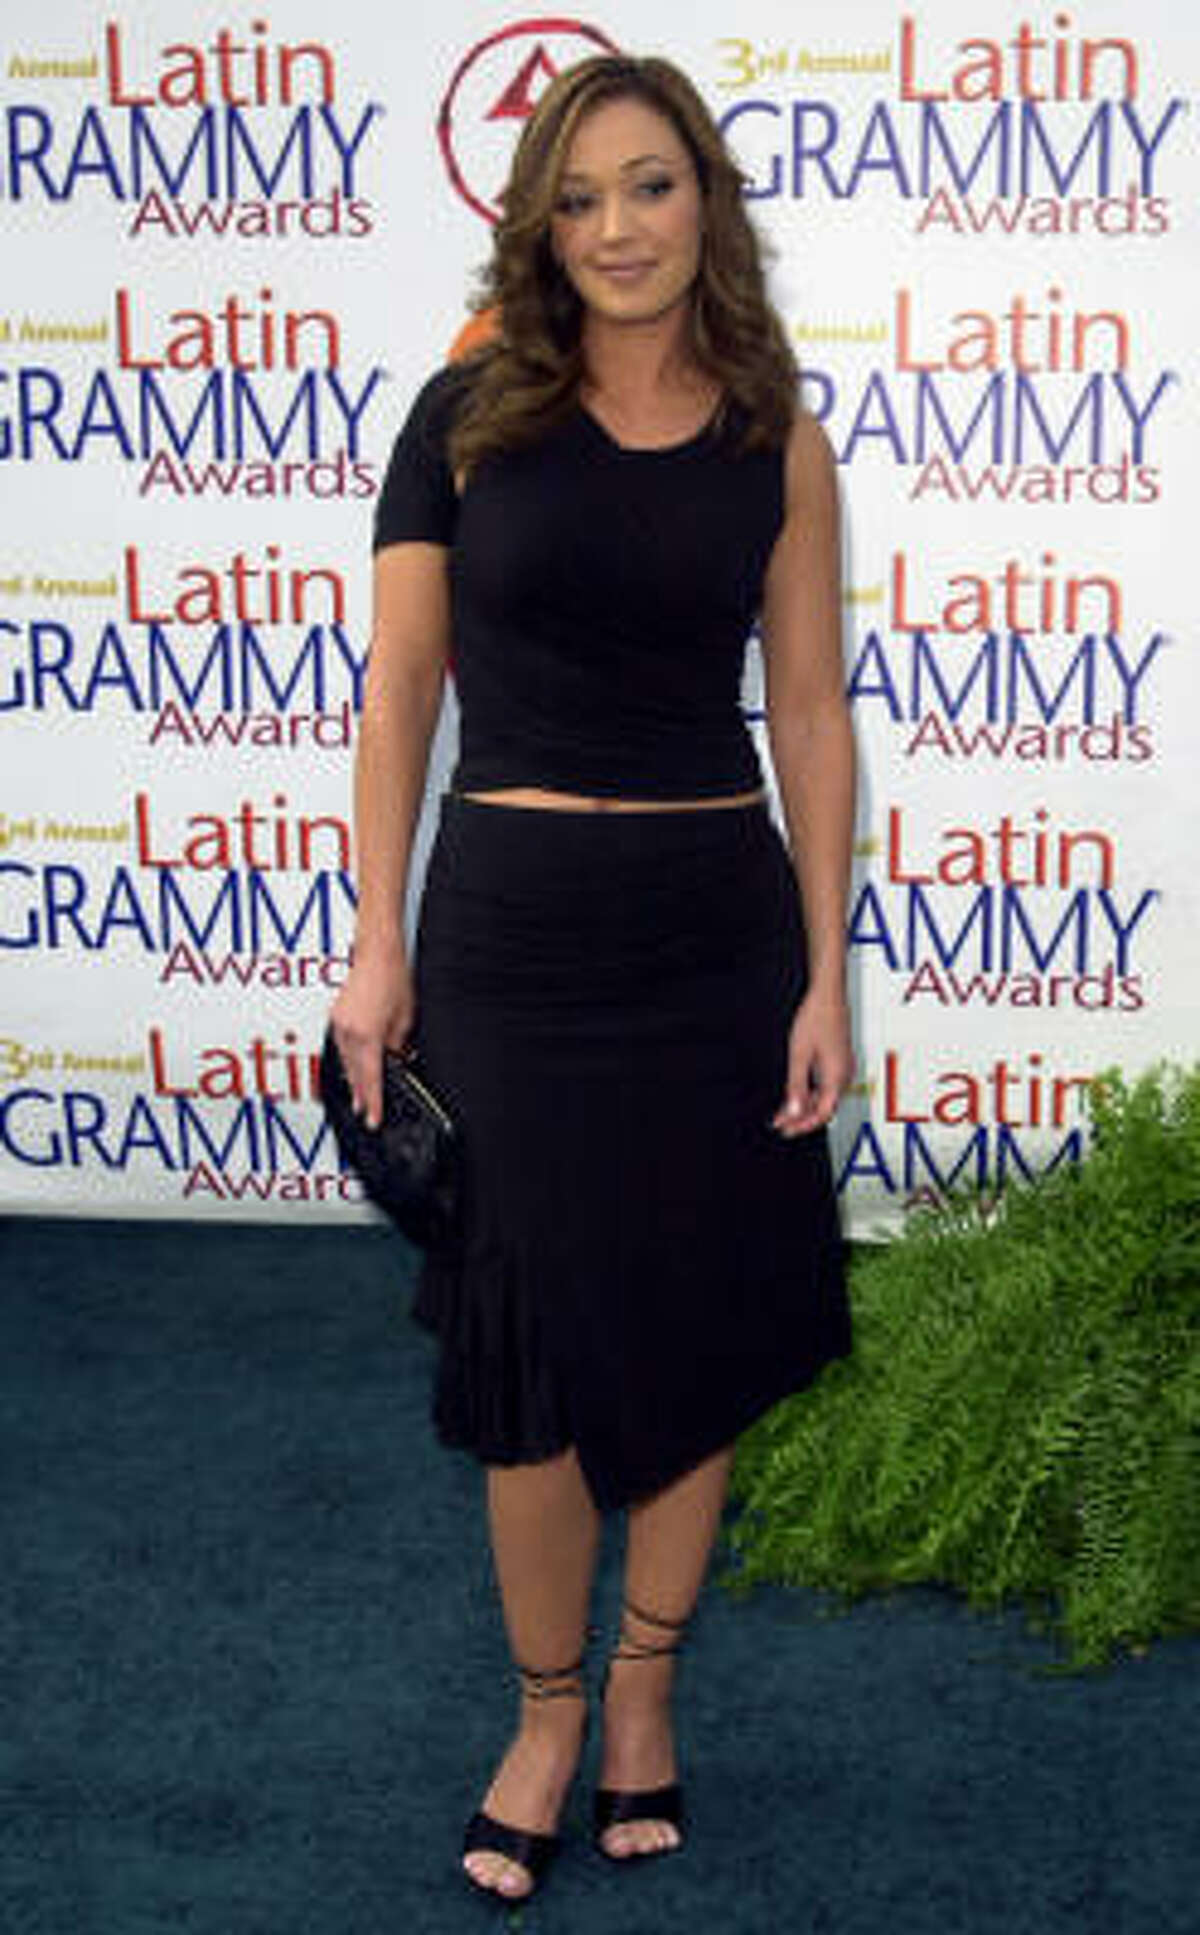 Leah Remini This actress has reportedly ended her 30, or so, years in the church over issues with leadership.